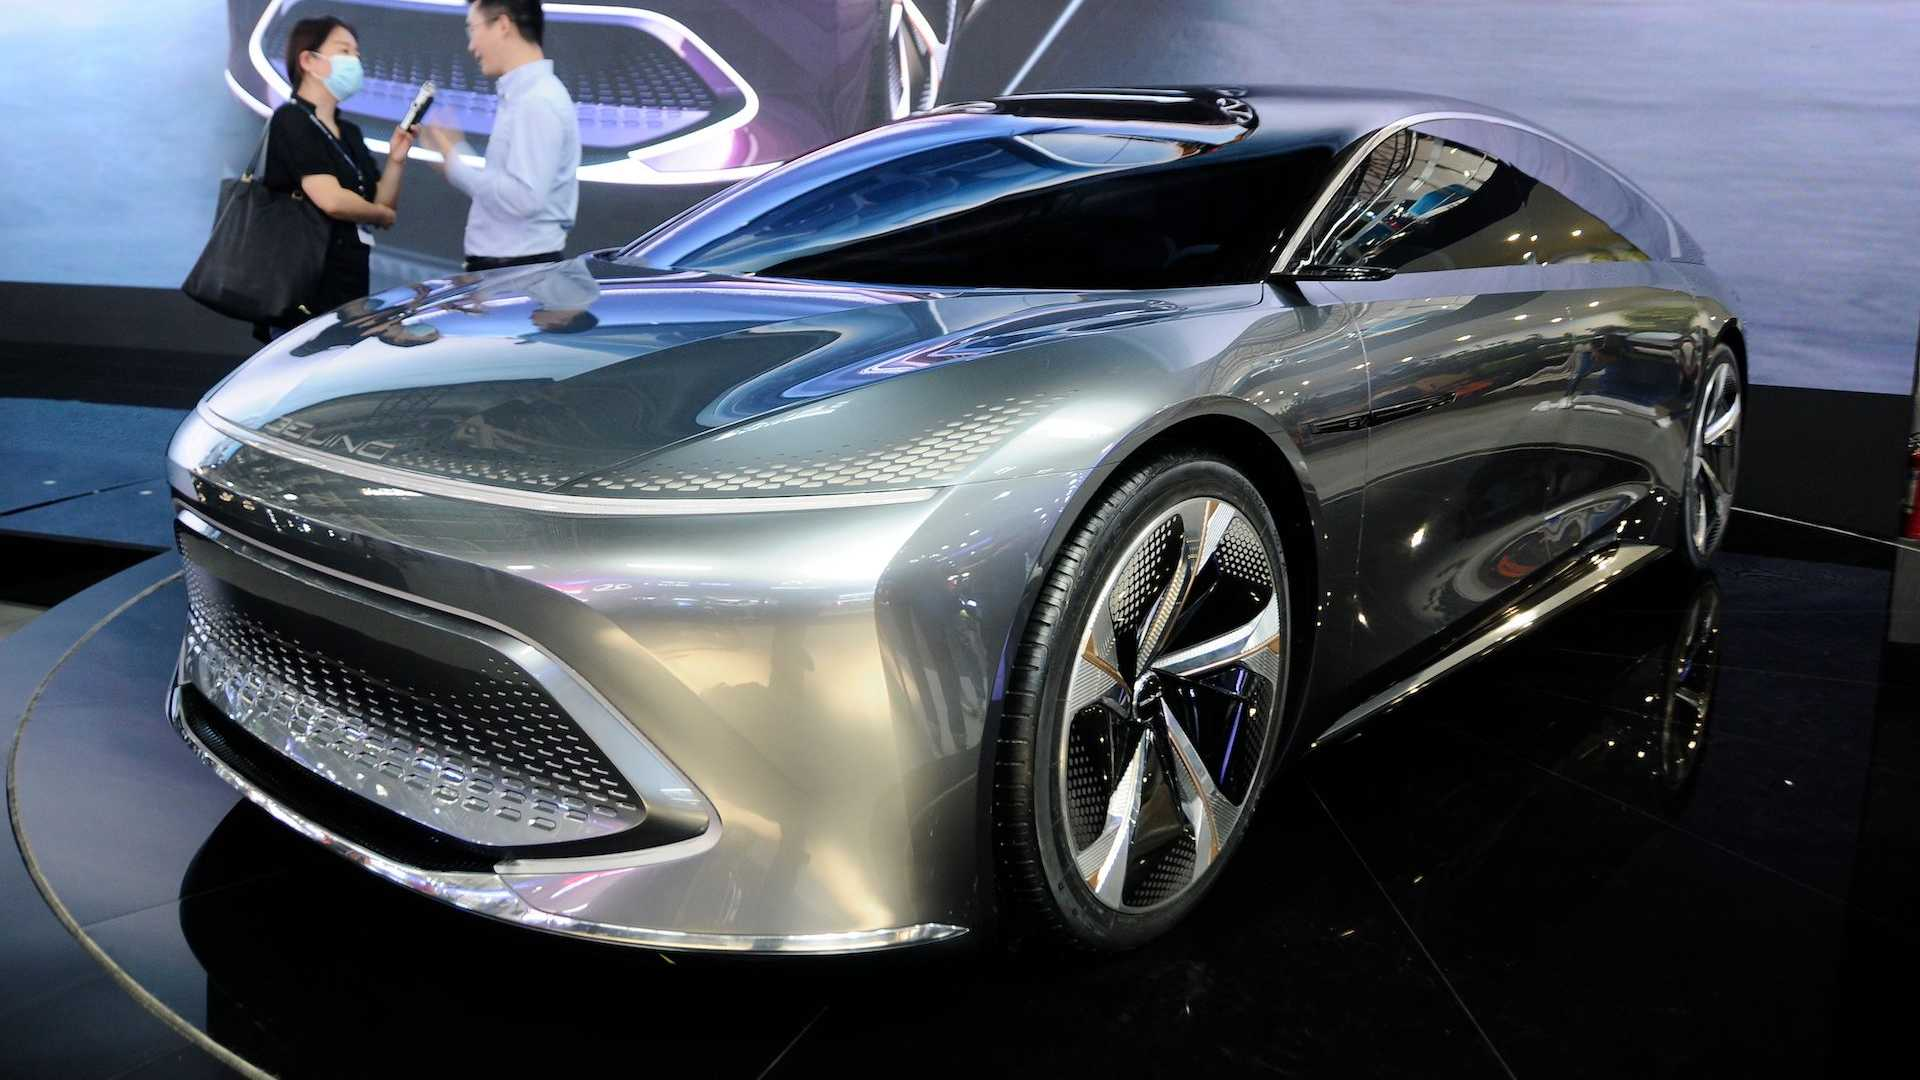 Beijing Radiance Concept Aims At Tesla Model S When It Hits Production